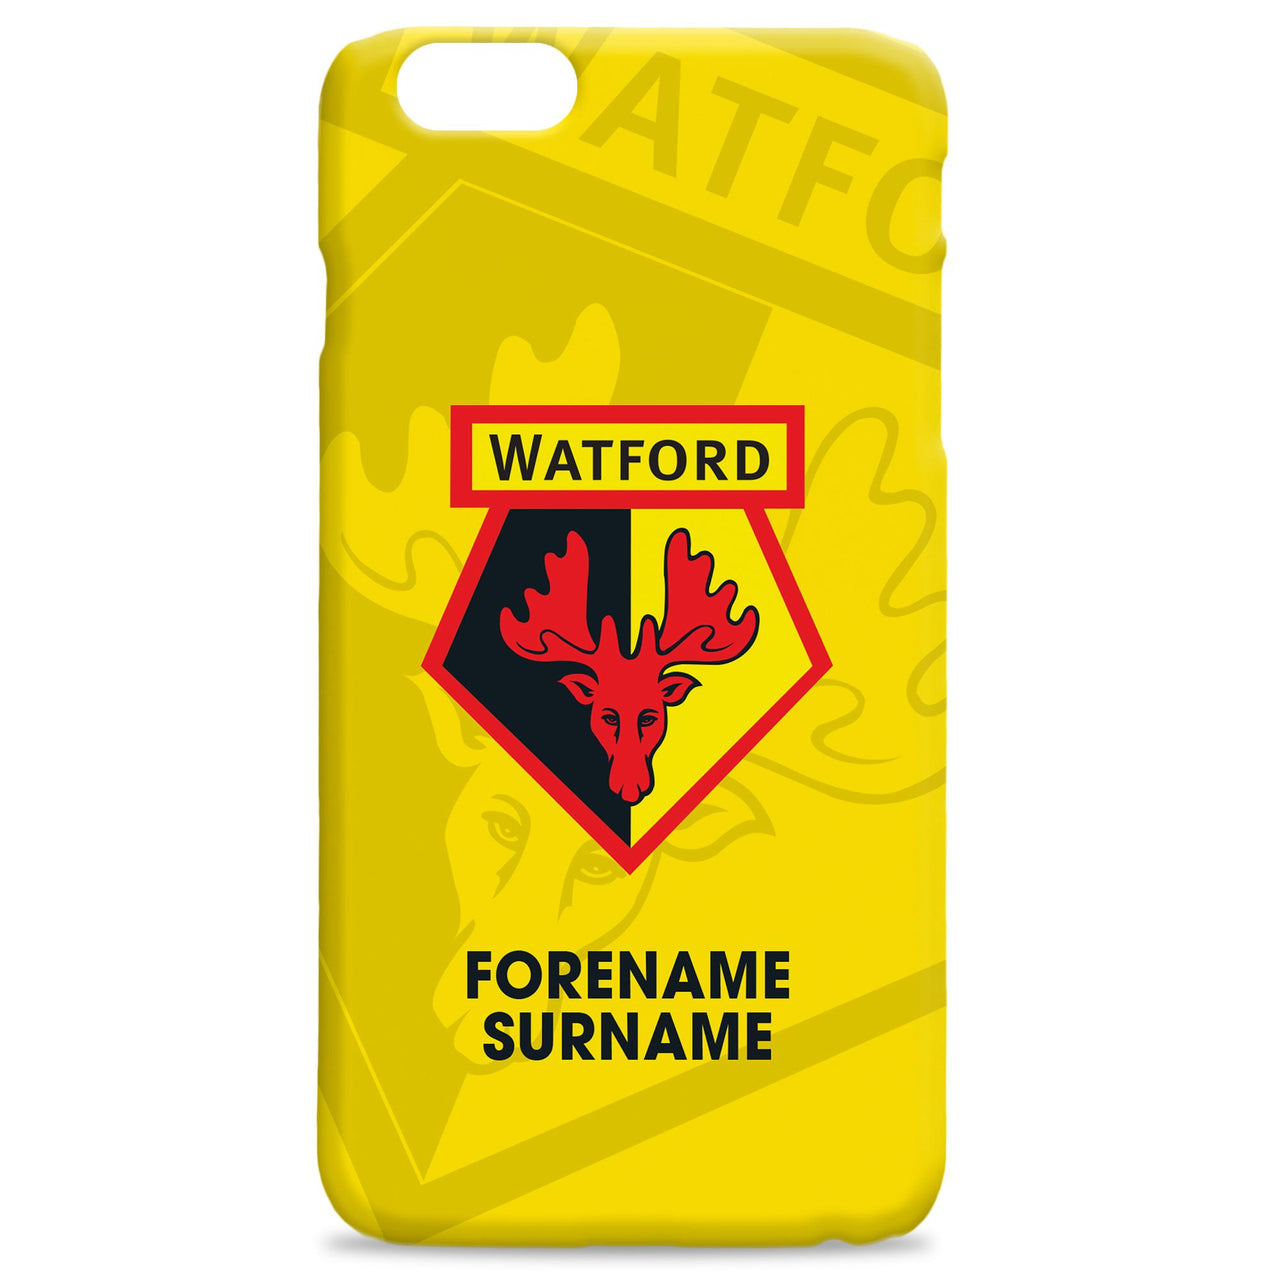 Watford FC Bold Crest Phone Case, Gifts